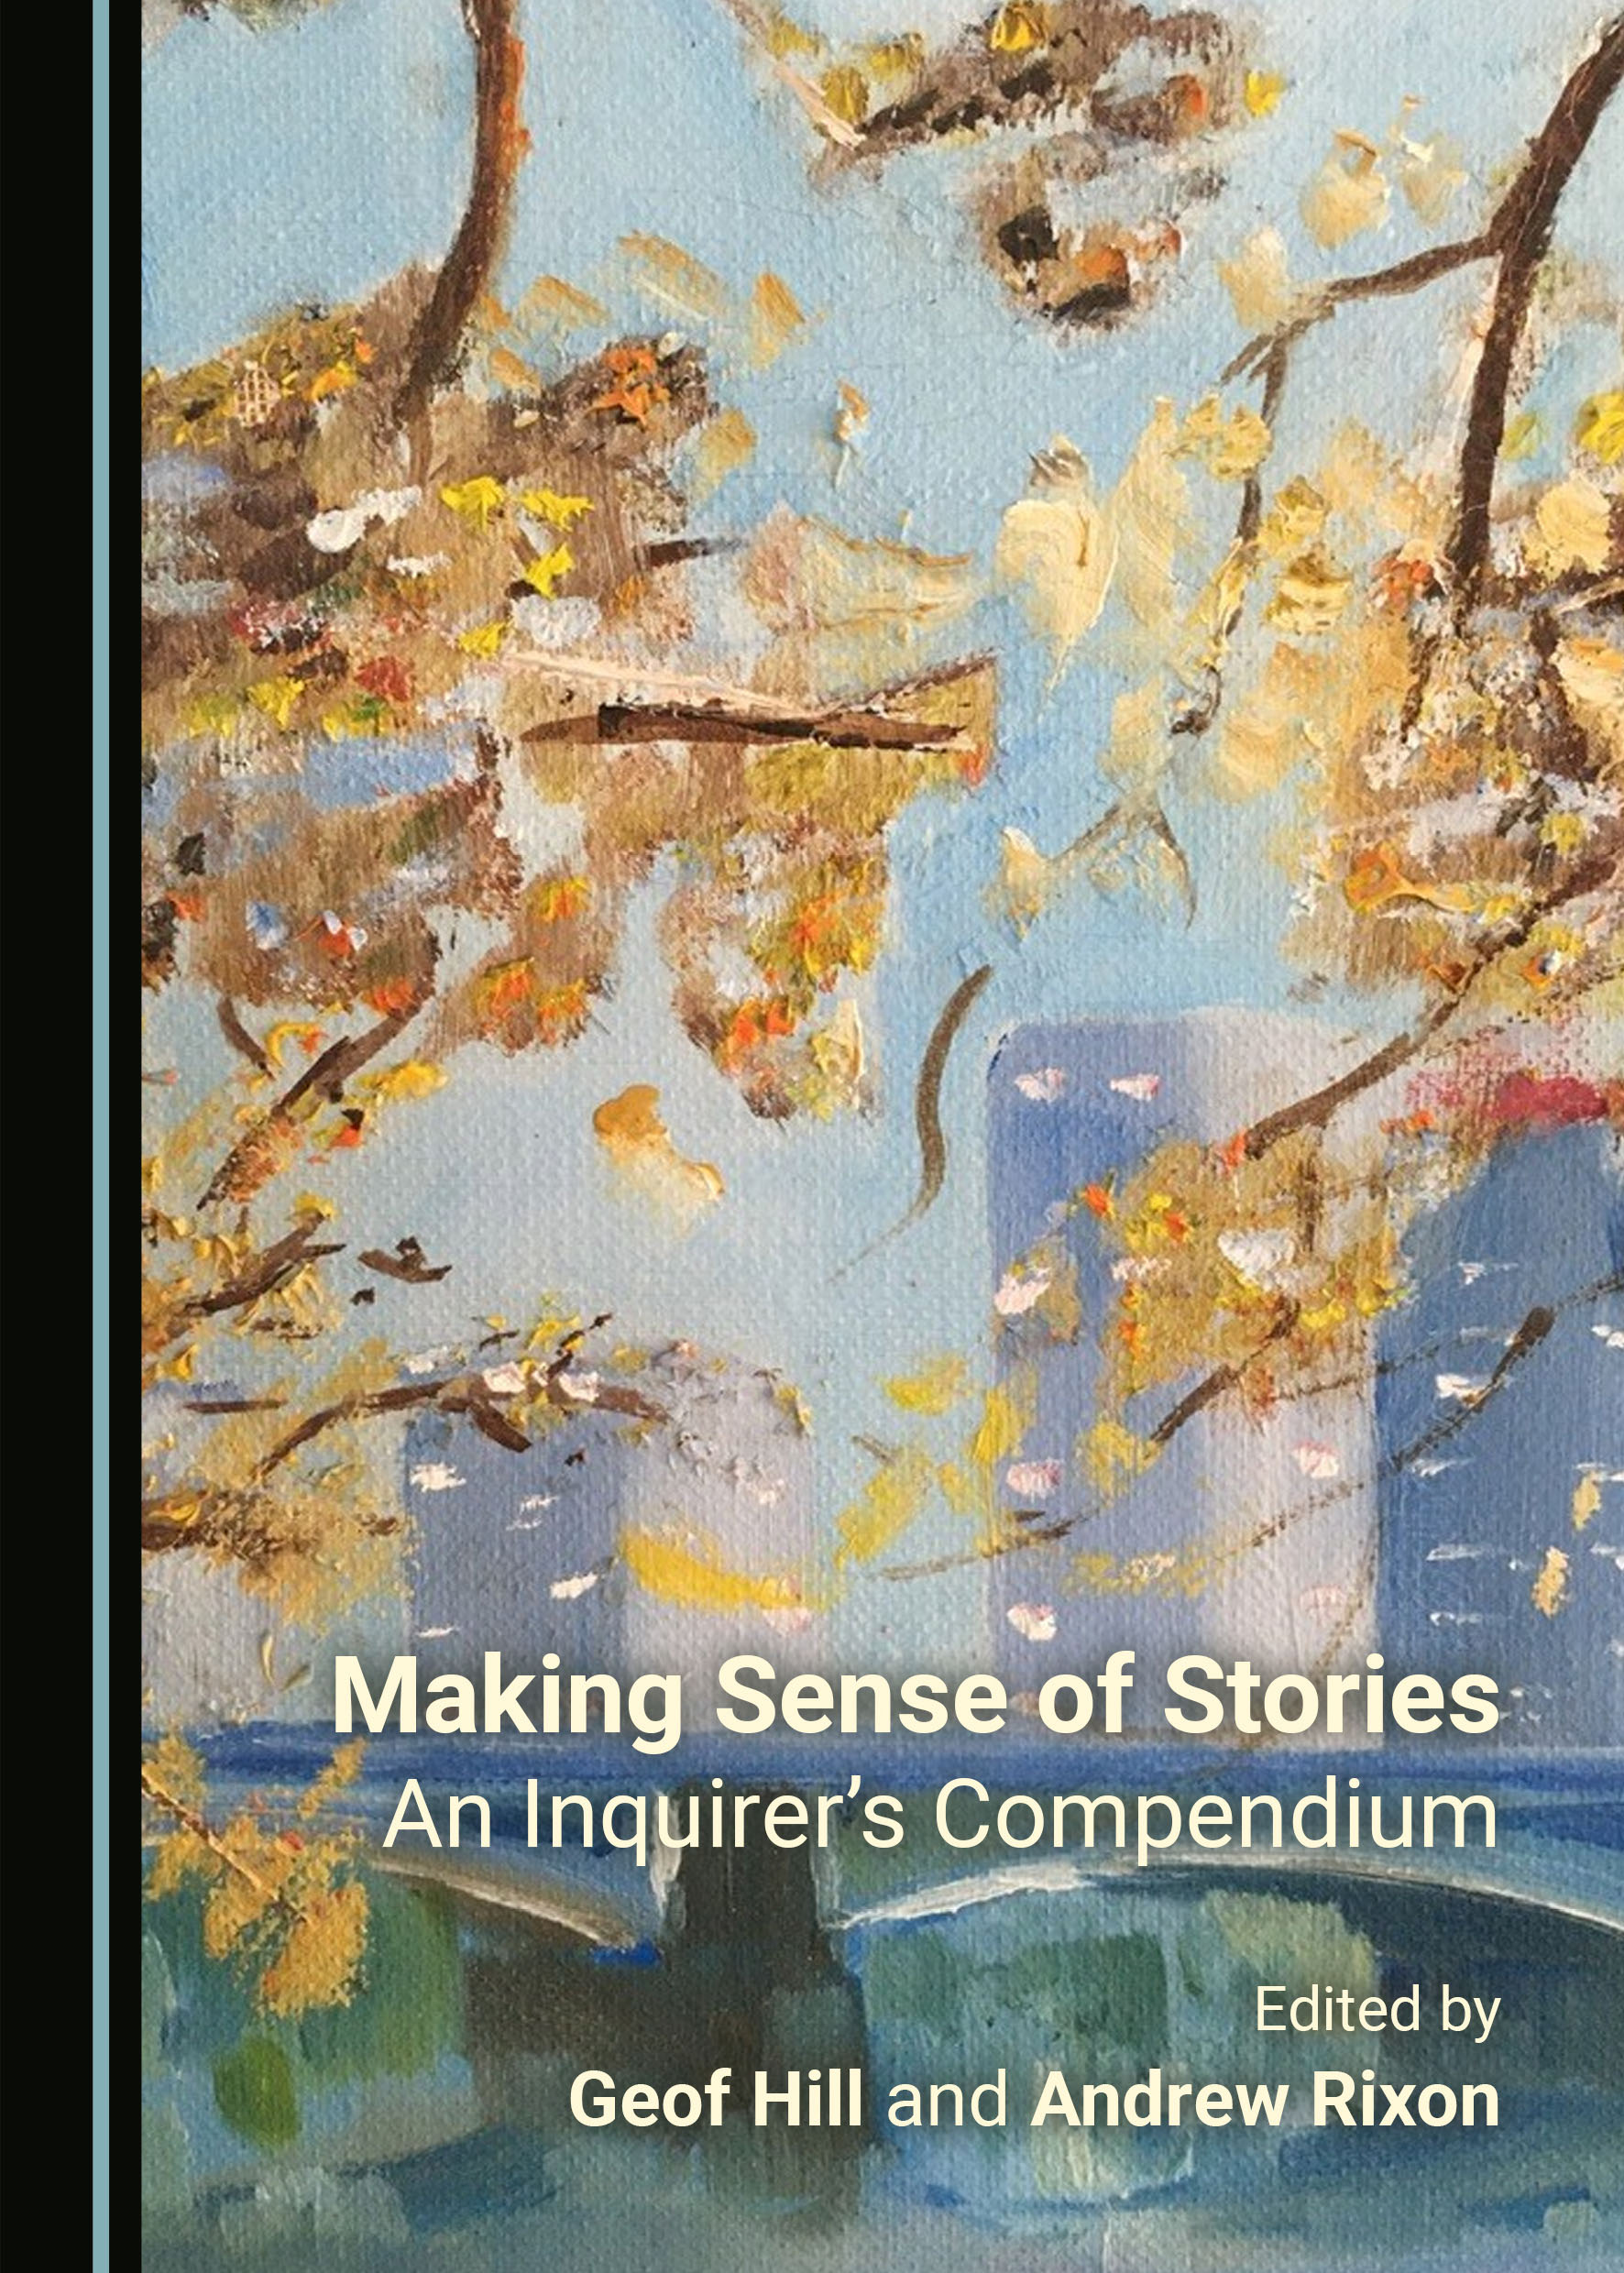 Making Sense of Stories: An Inquirer's Compendium